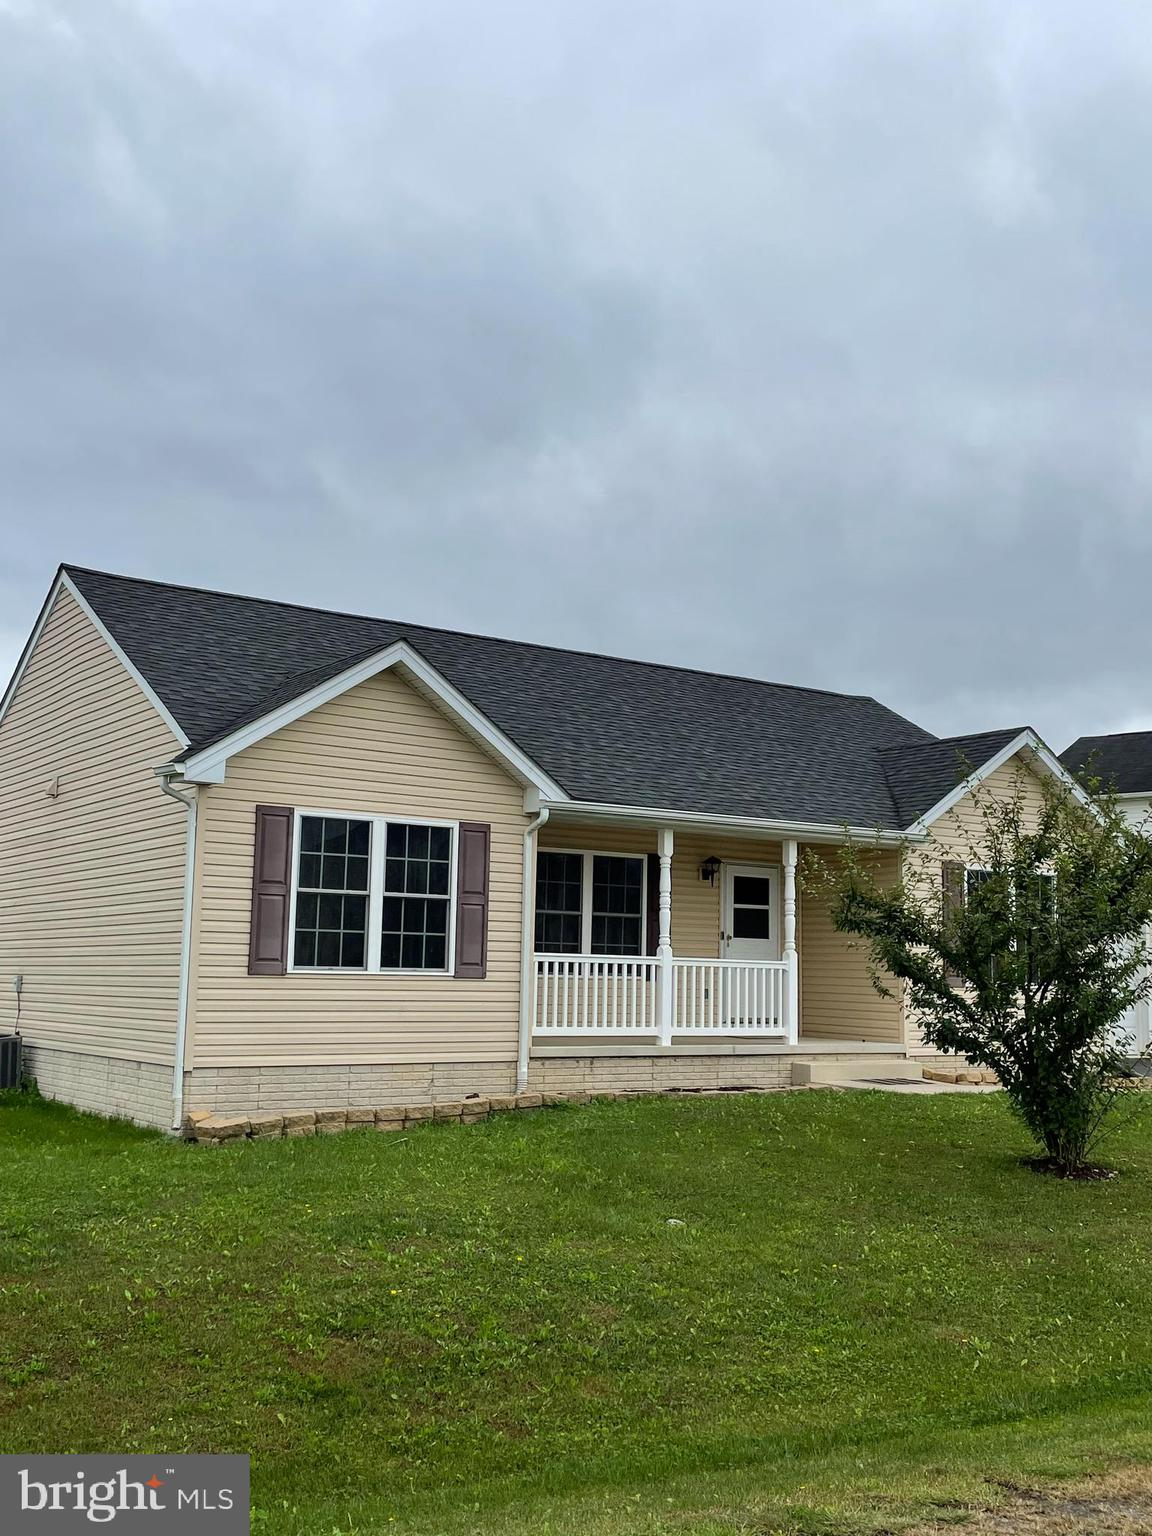 Come view this rancher home offering 3 bedrooms split bedrooms and 2 full baths on main level with c